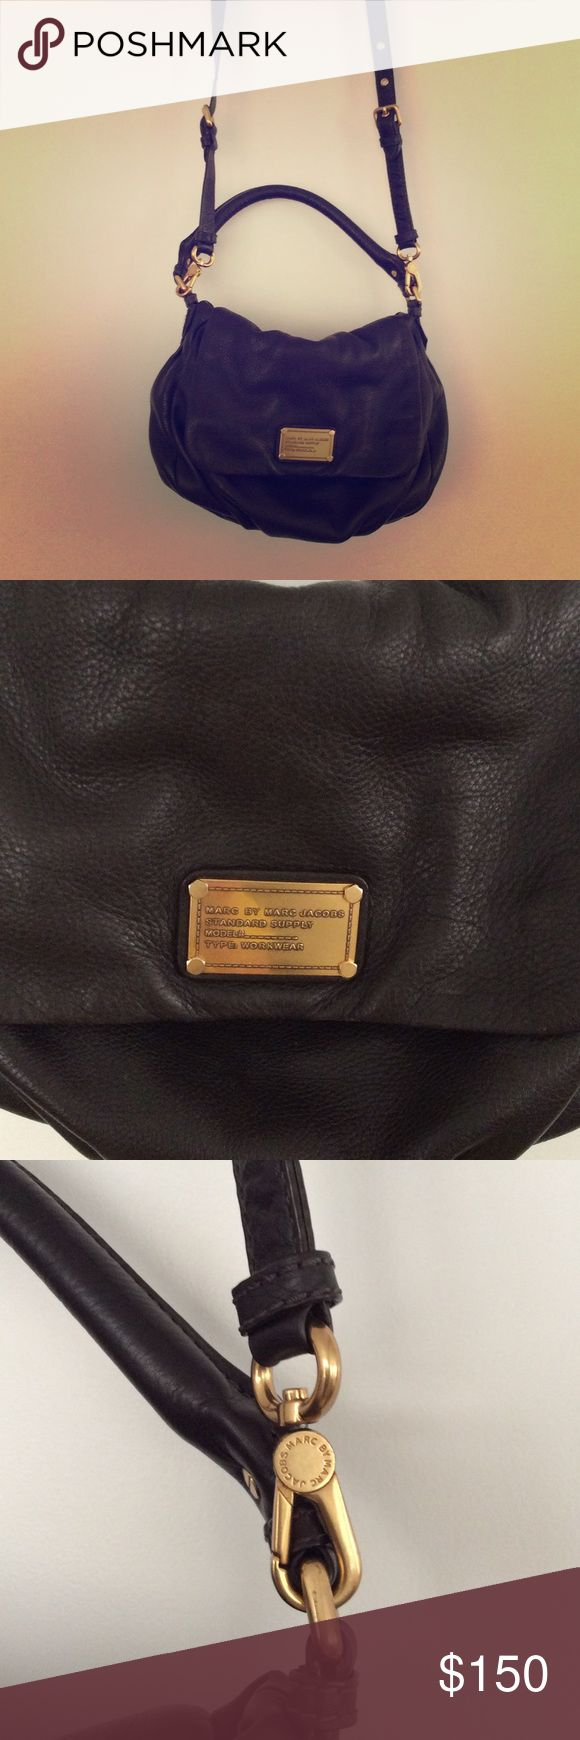 Marc Jacobs brown leather handbag Marc Jacobs stand supply work wear brown leather handbag in great condition! Marc by Marc Jacobs Bags Crossbody Bags